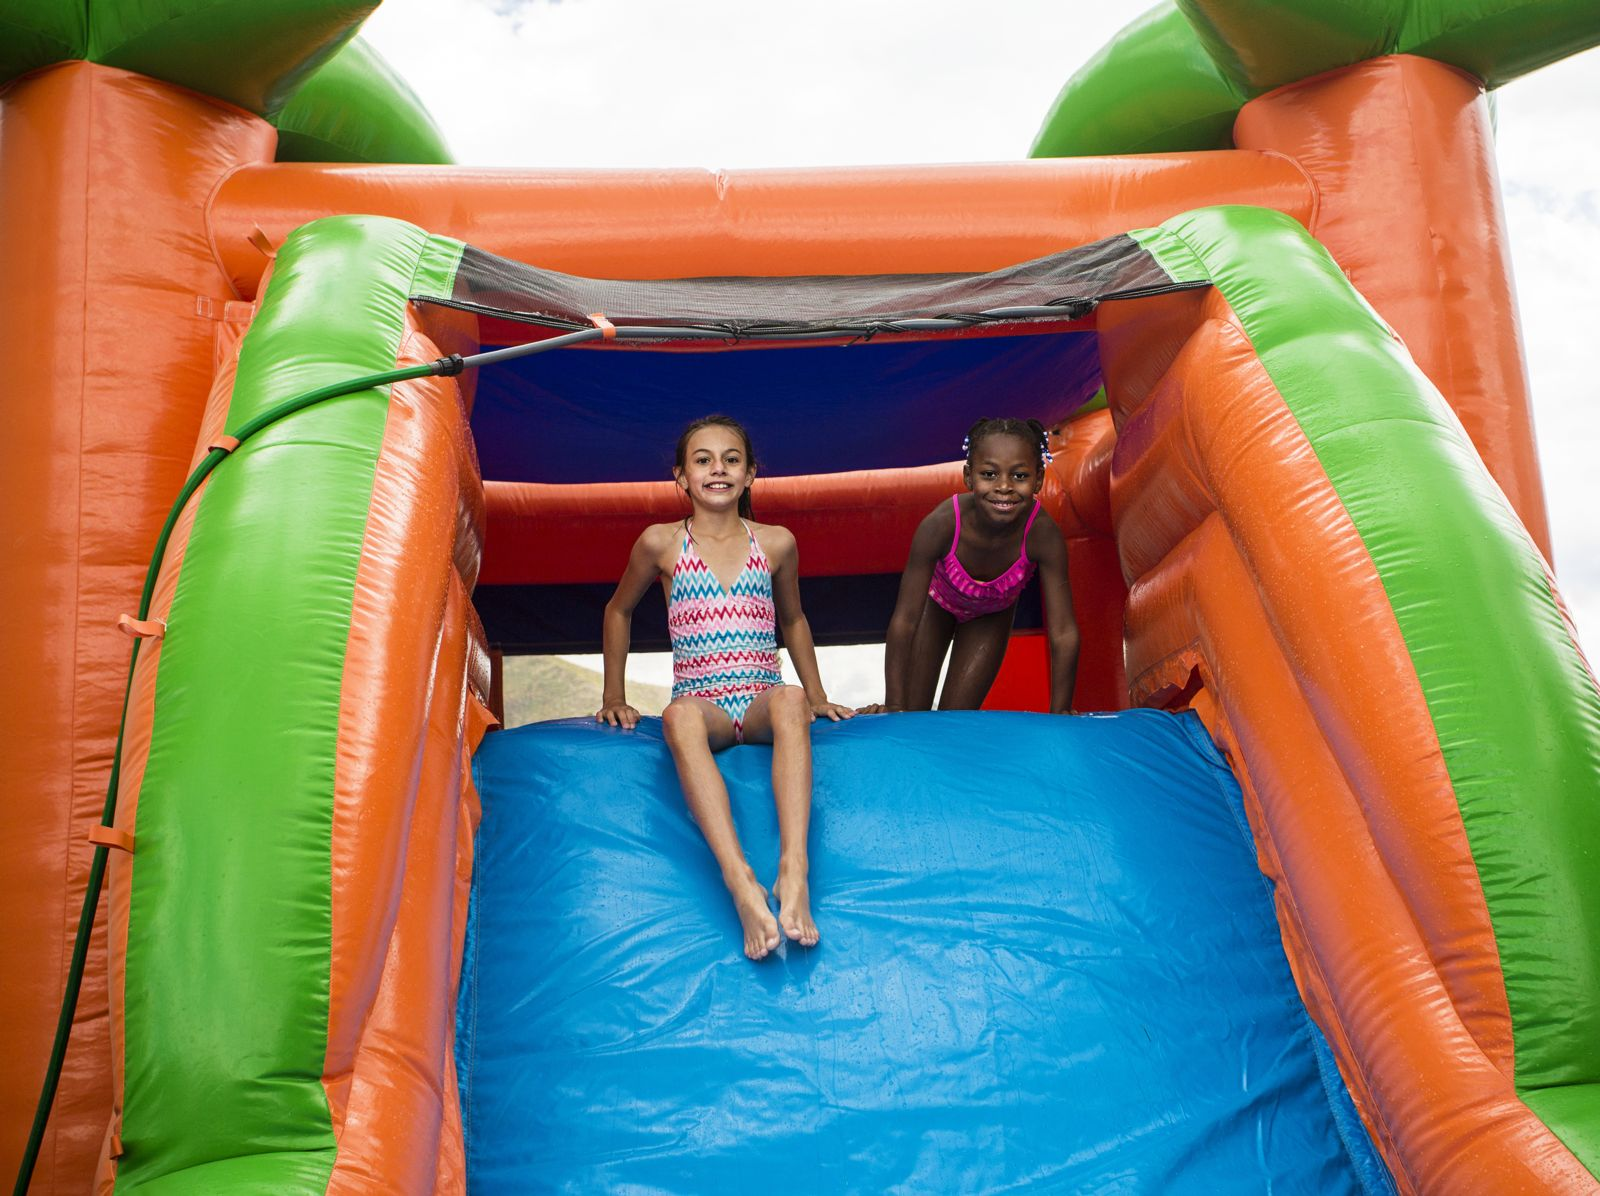 Bounce houses can be dangerous, so follow these strict safety guidelines!